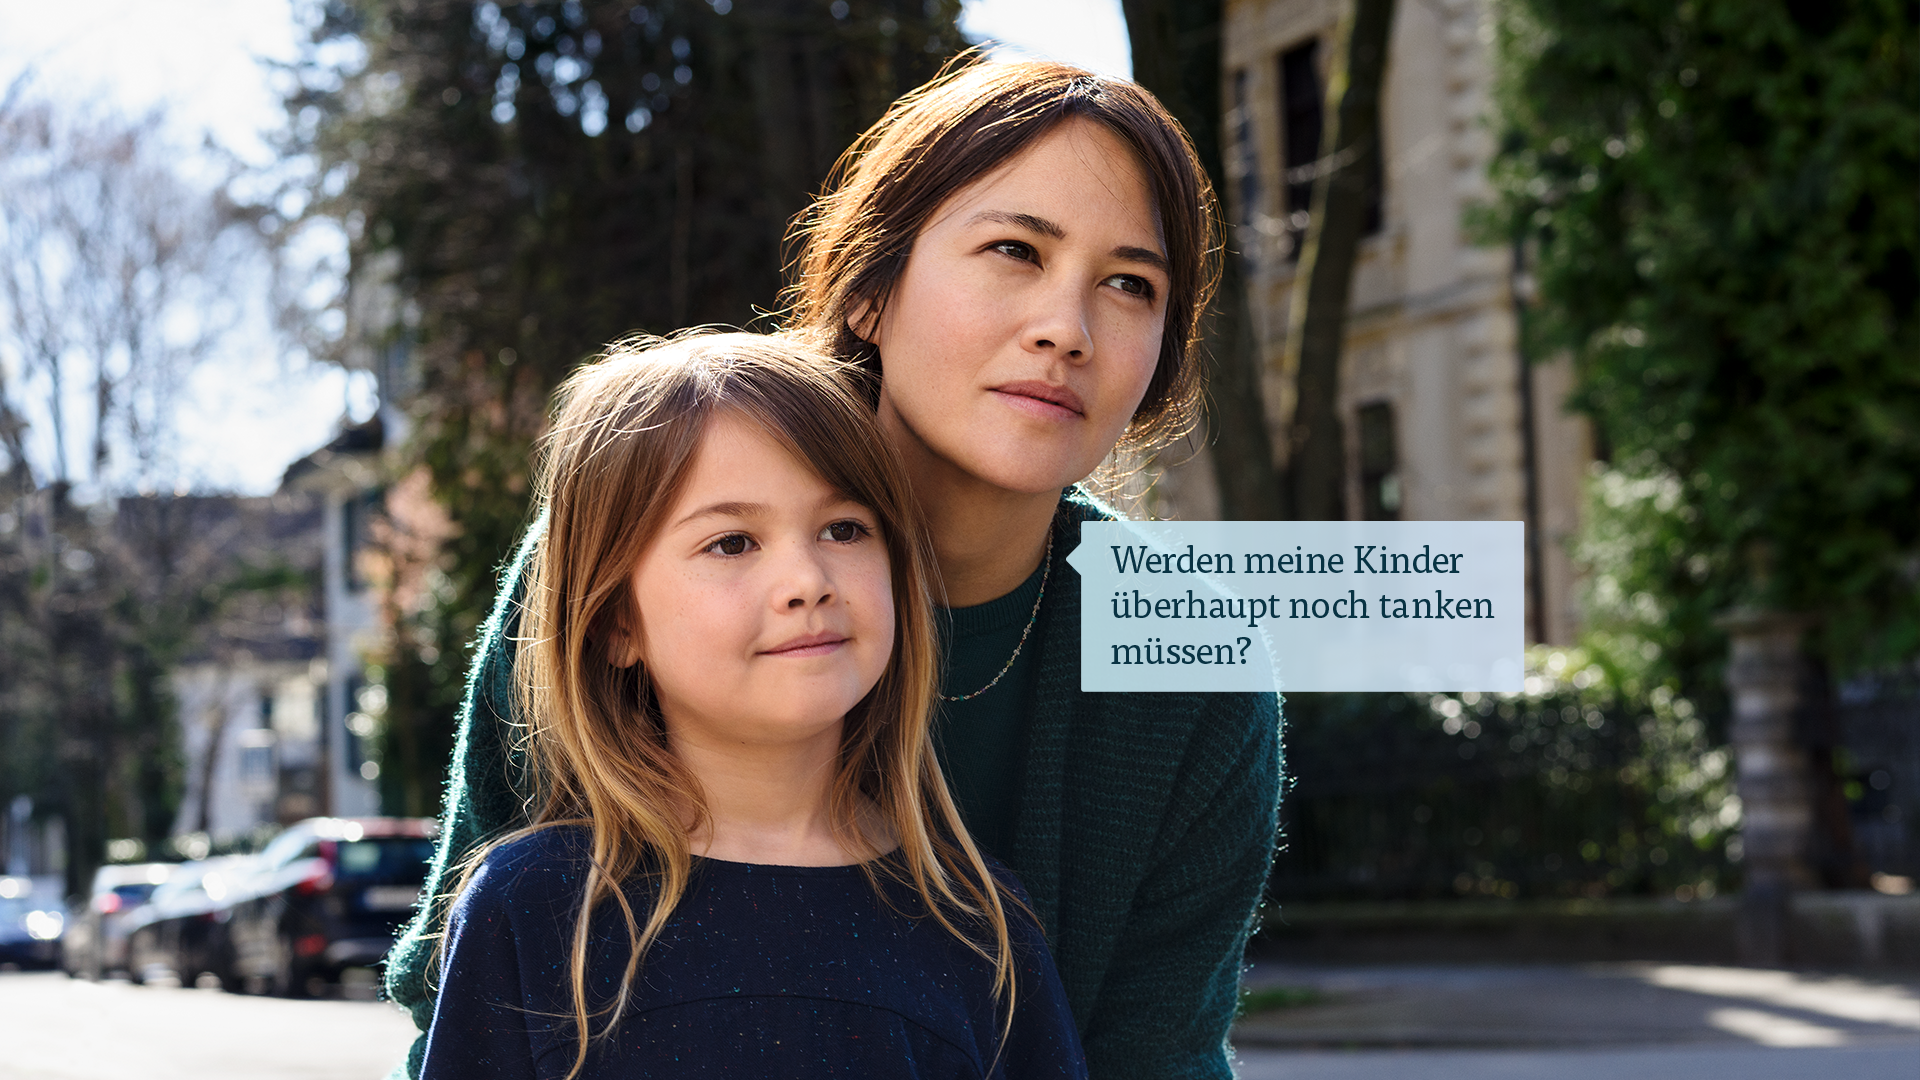 EV_Webseite_Sujets_Mutter_Kind_DE Kopie.png